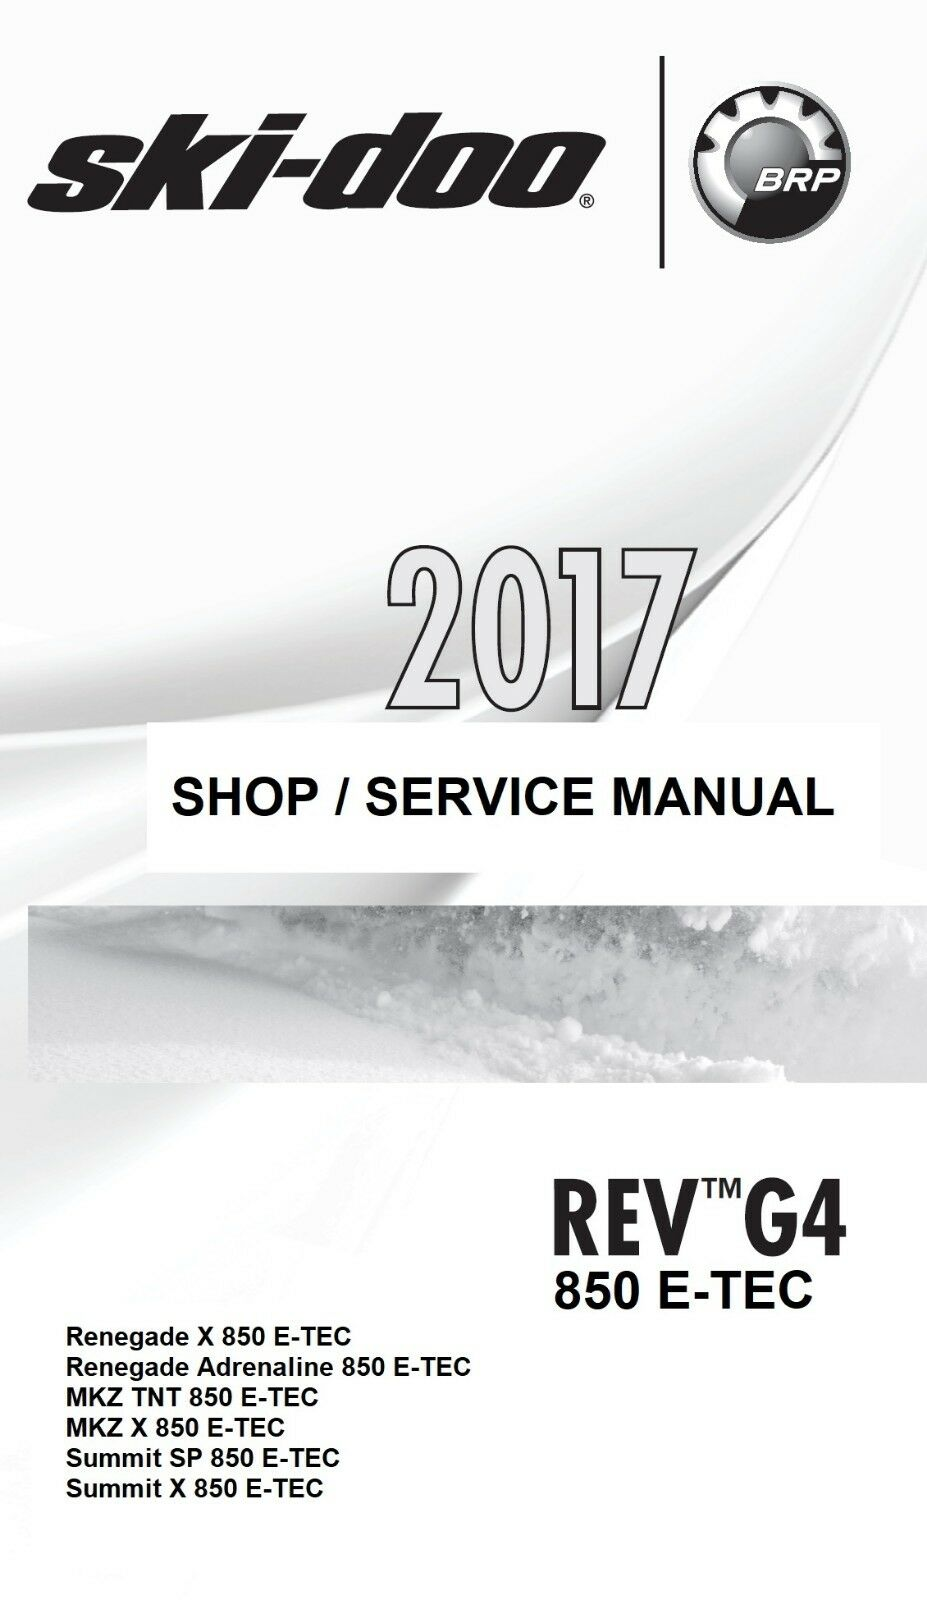 2017 Ski-Doo G4 850 E-TEC Renegade MKZ Summit snowmobile service manual on  1 of 3FREE Shipping See More